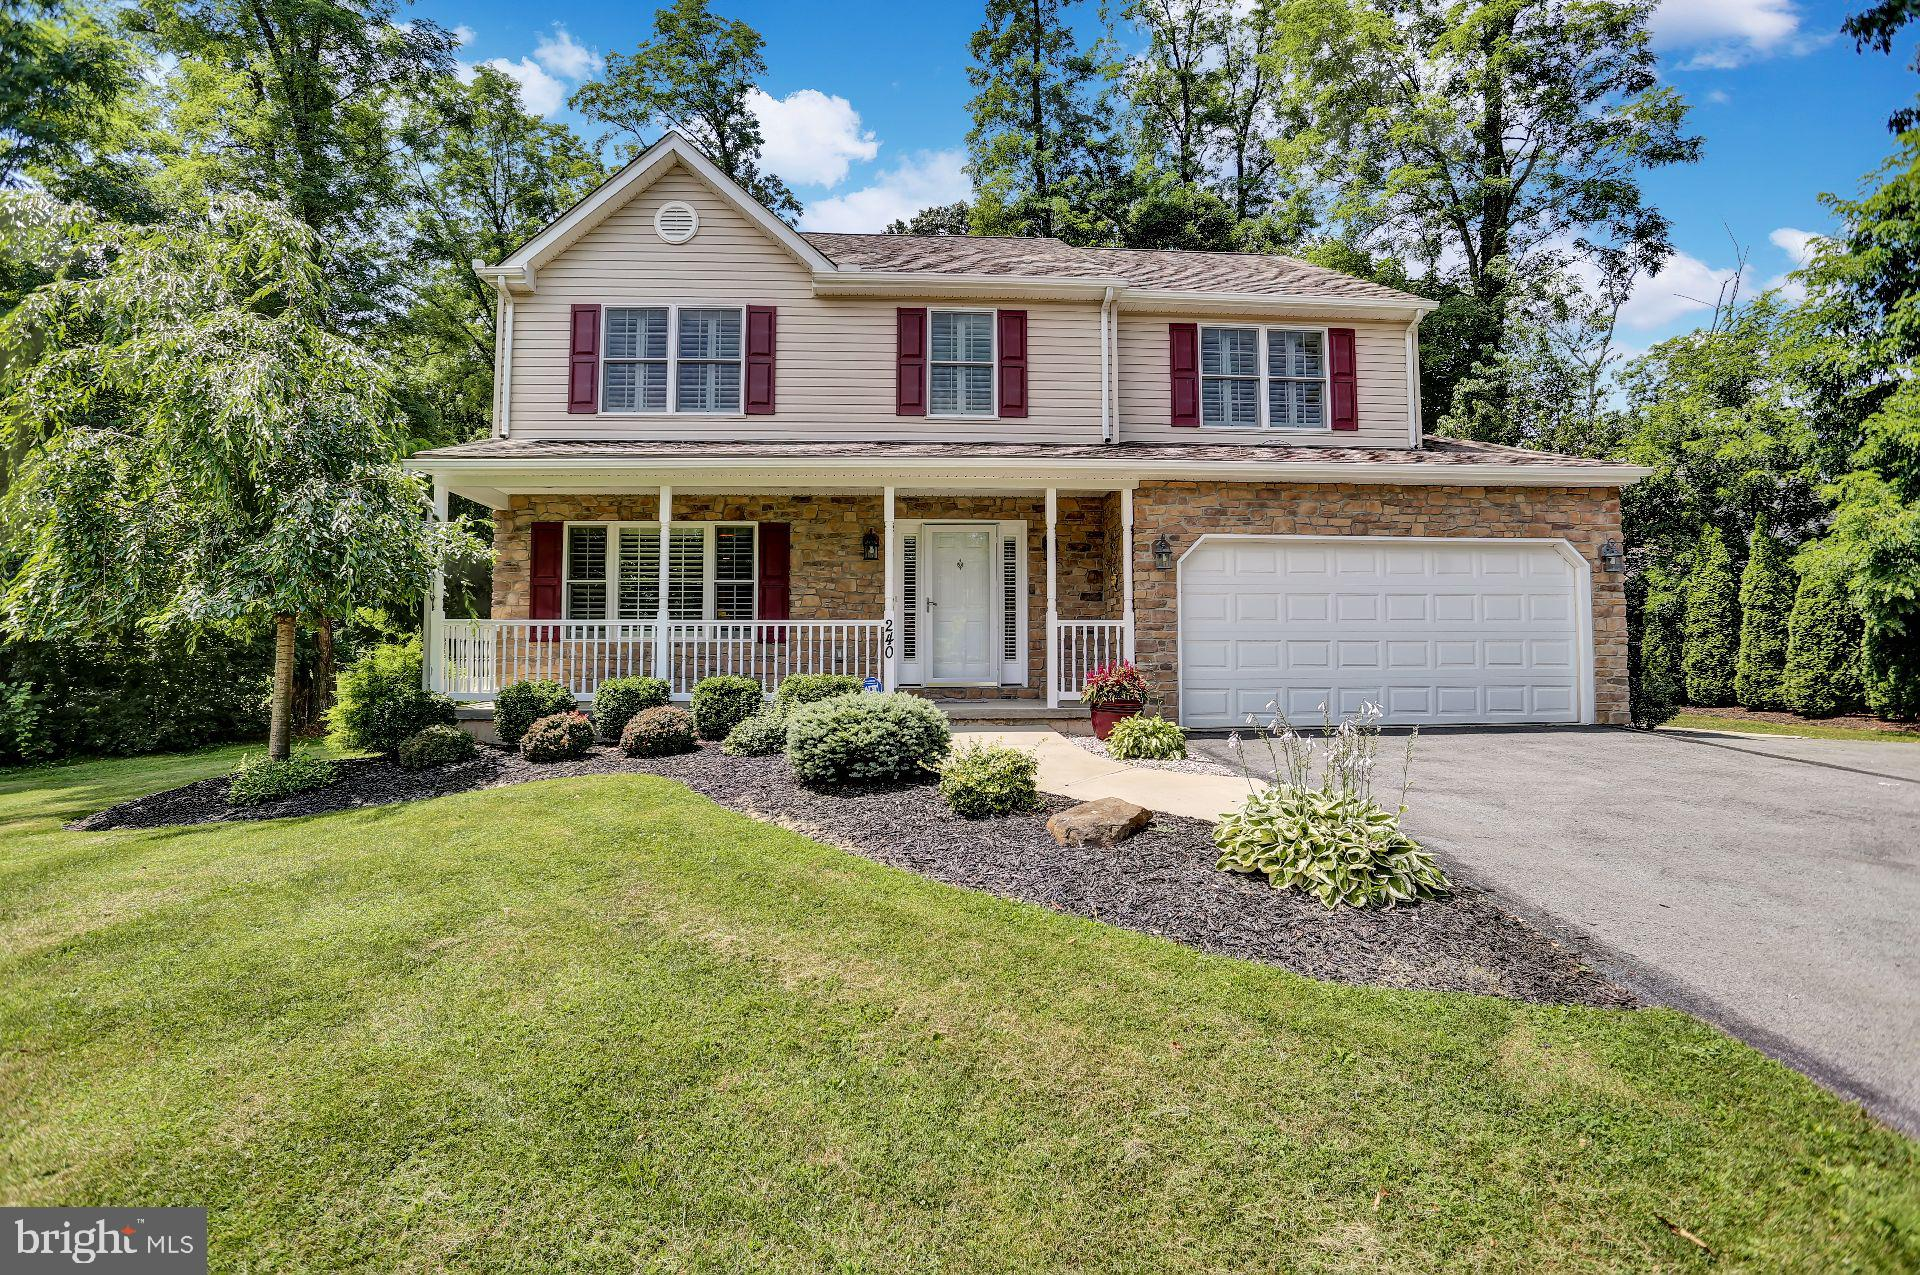 240 KROCKS ROAD, ALLENTOWN, PA 18104